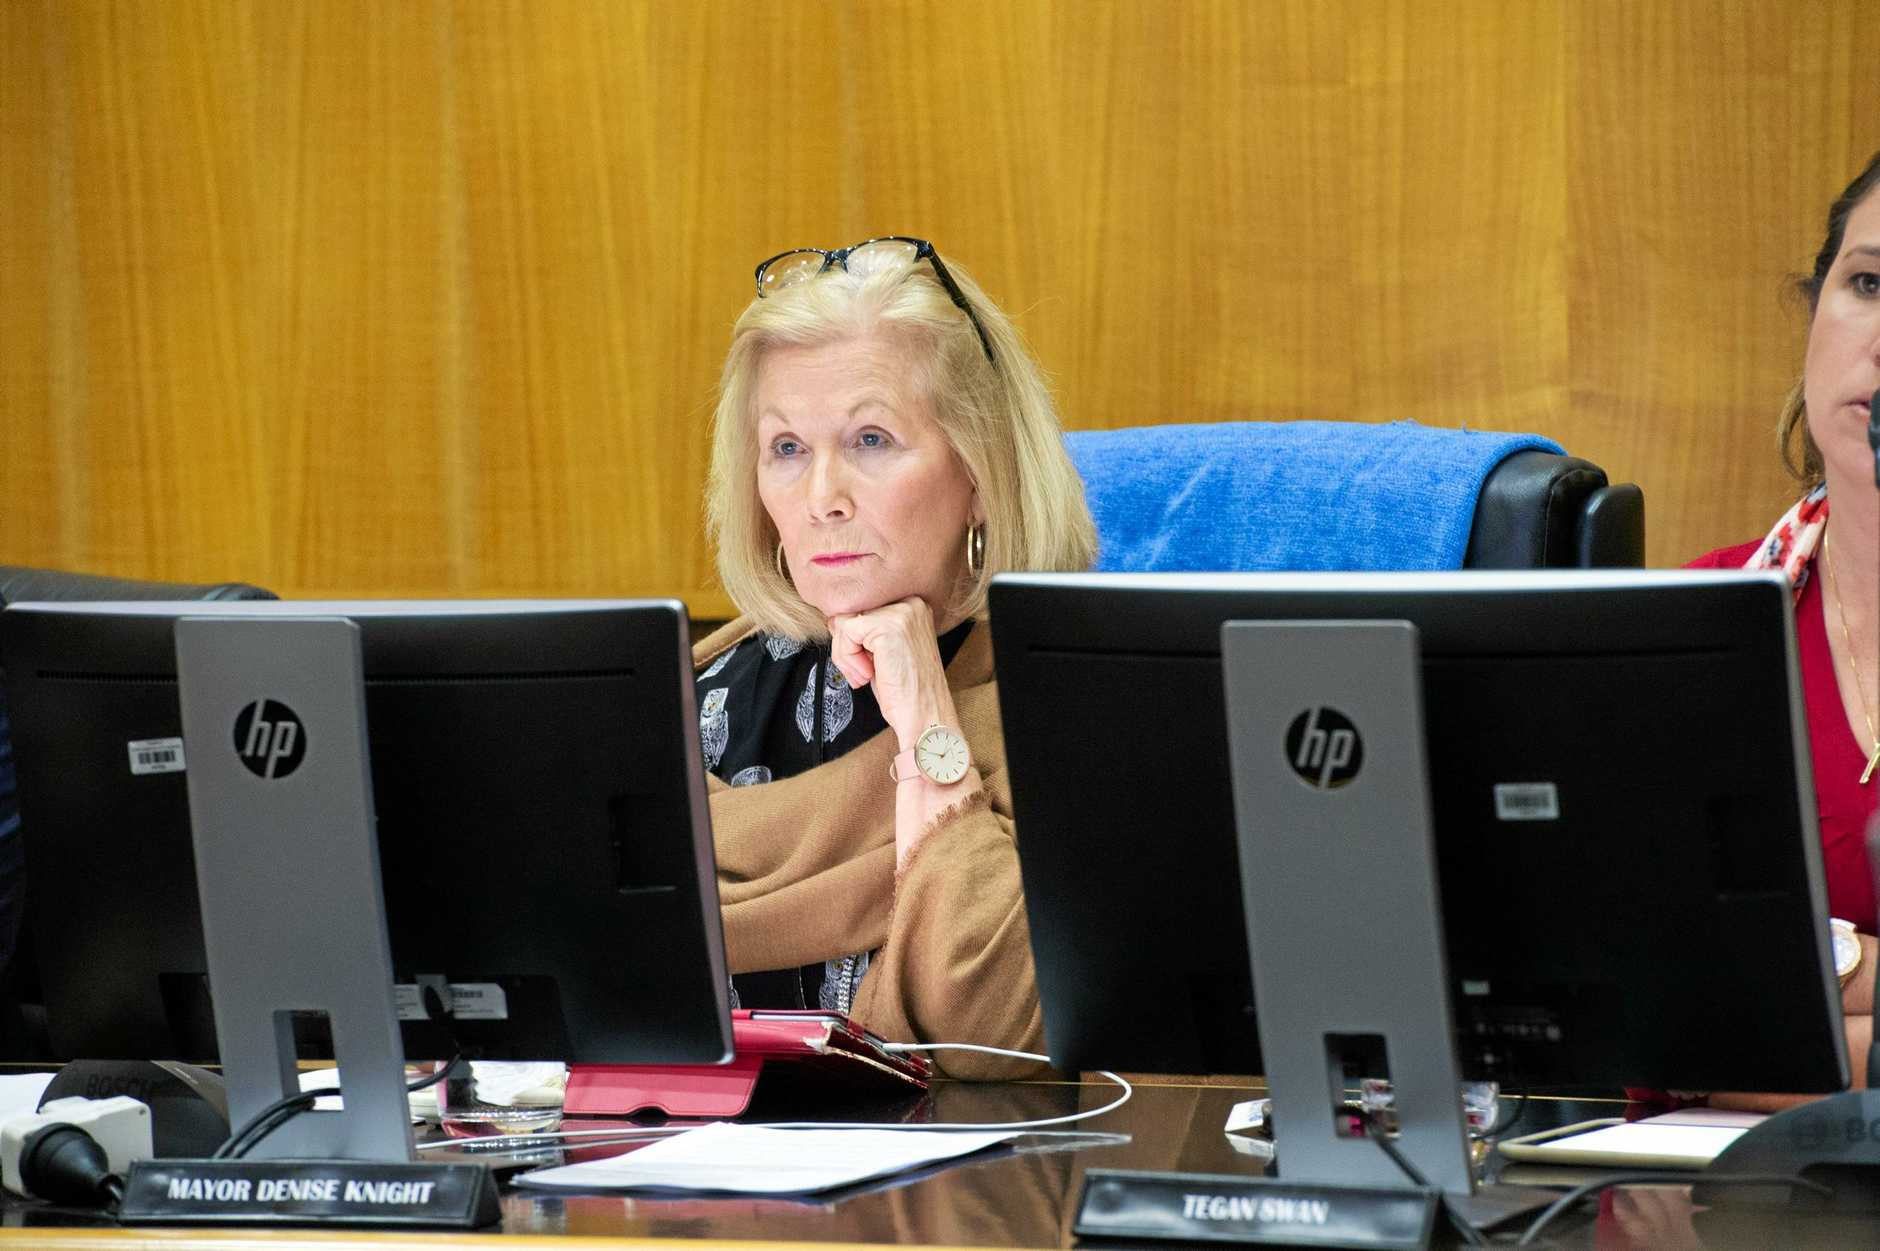 Coffs Harbour Mayor Denise Knight chairs last Thursday night's council meeting.